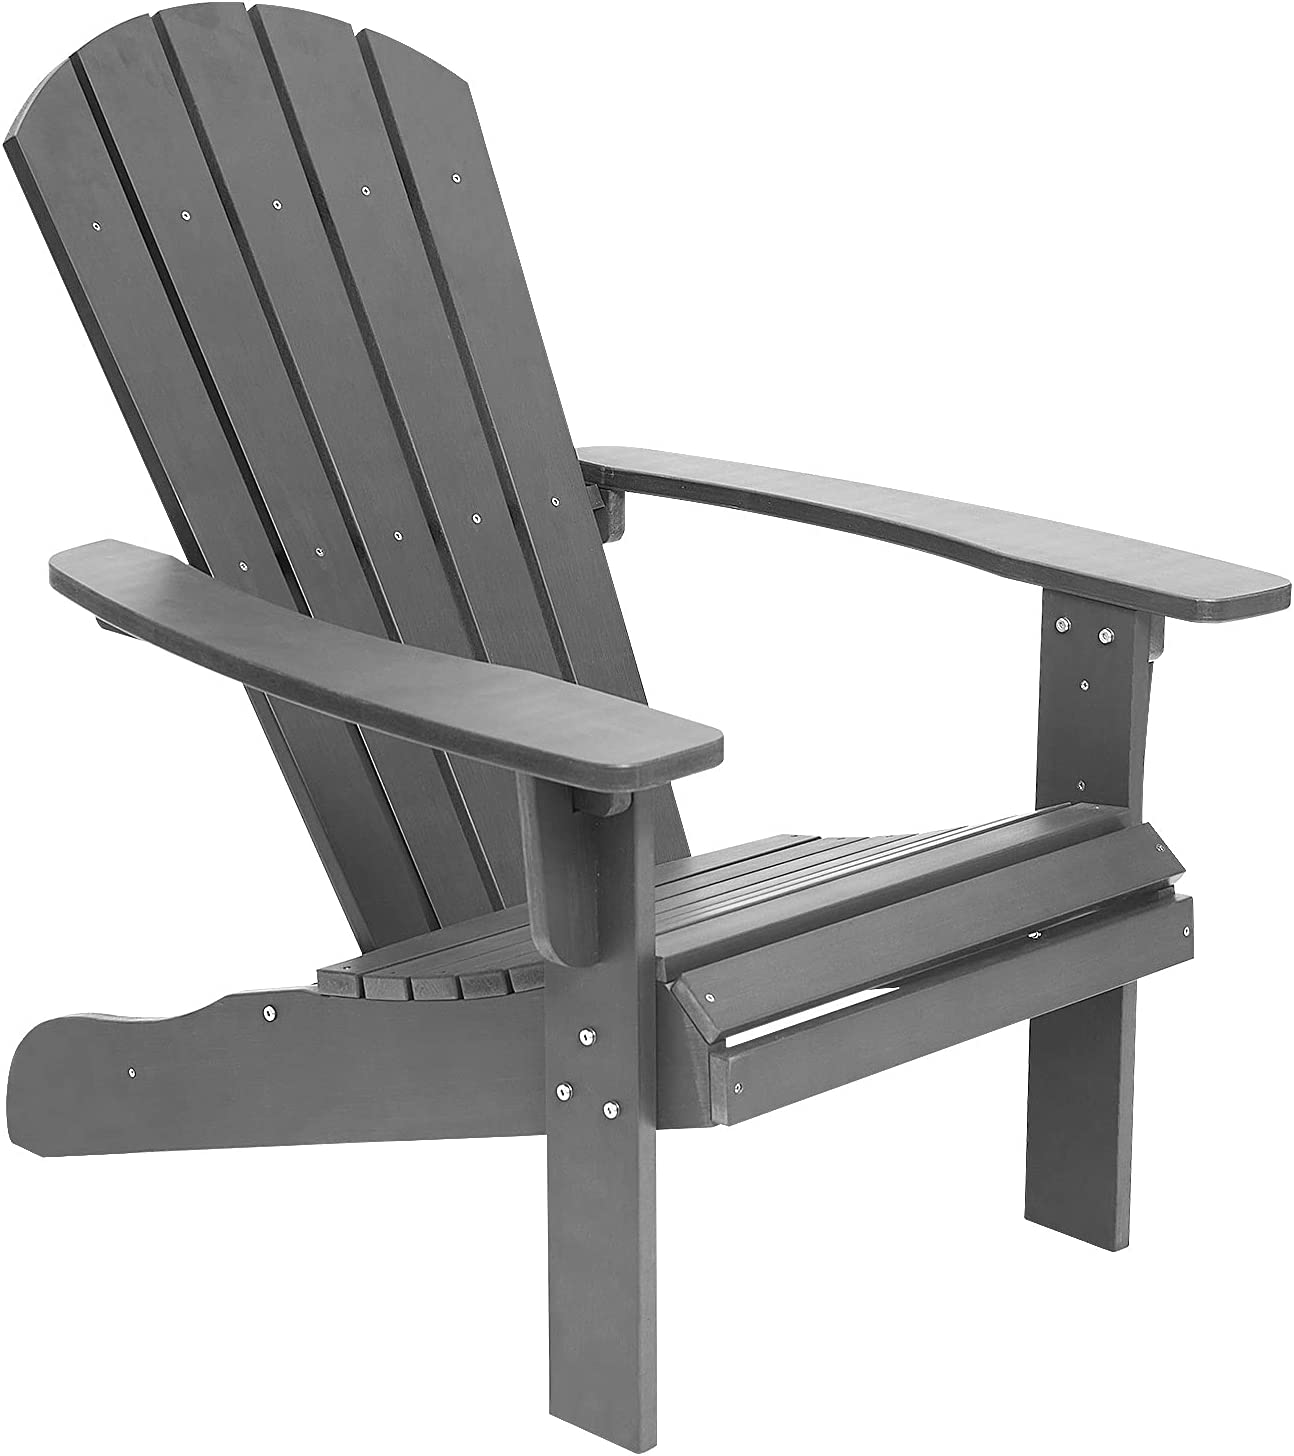 Juserox Adirondack Chair Weather Resistant Patio Outdoor Lawn Chairs Painted Adirondack Chair for Patio, Fire Pit, Garden, Backyard(Grey) : Patio, Lawn & Garden